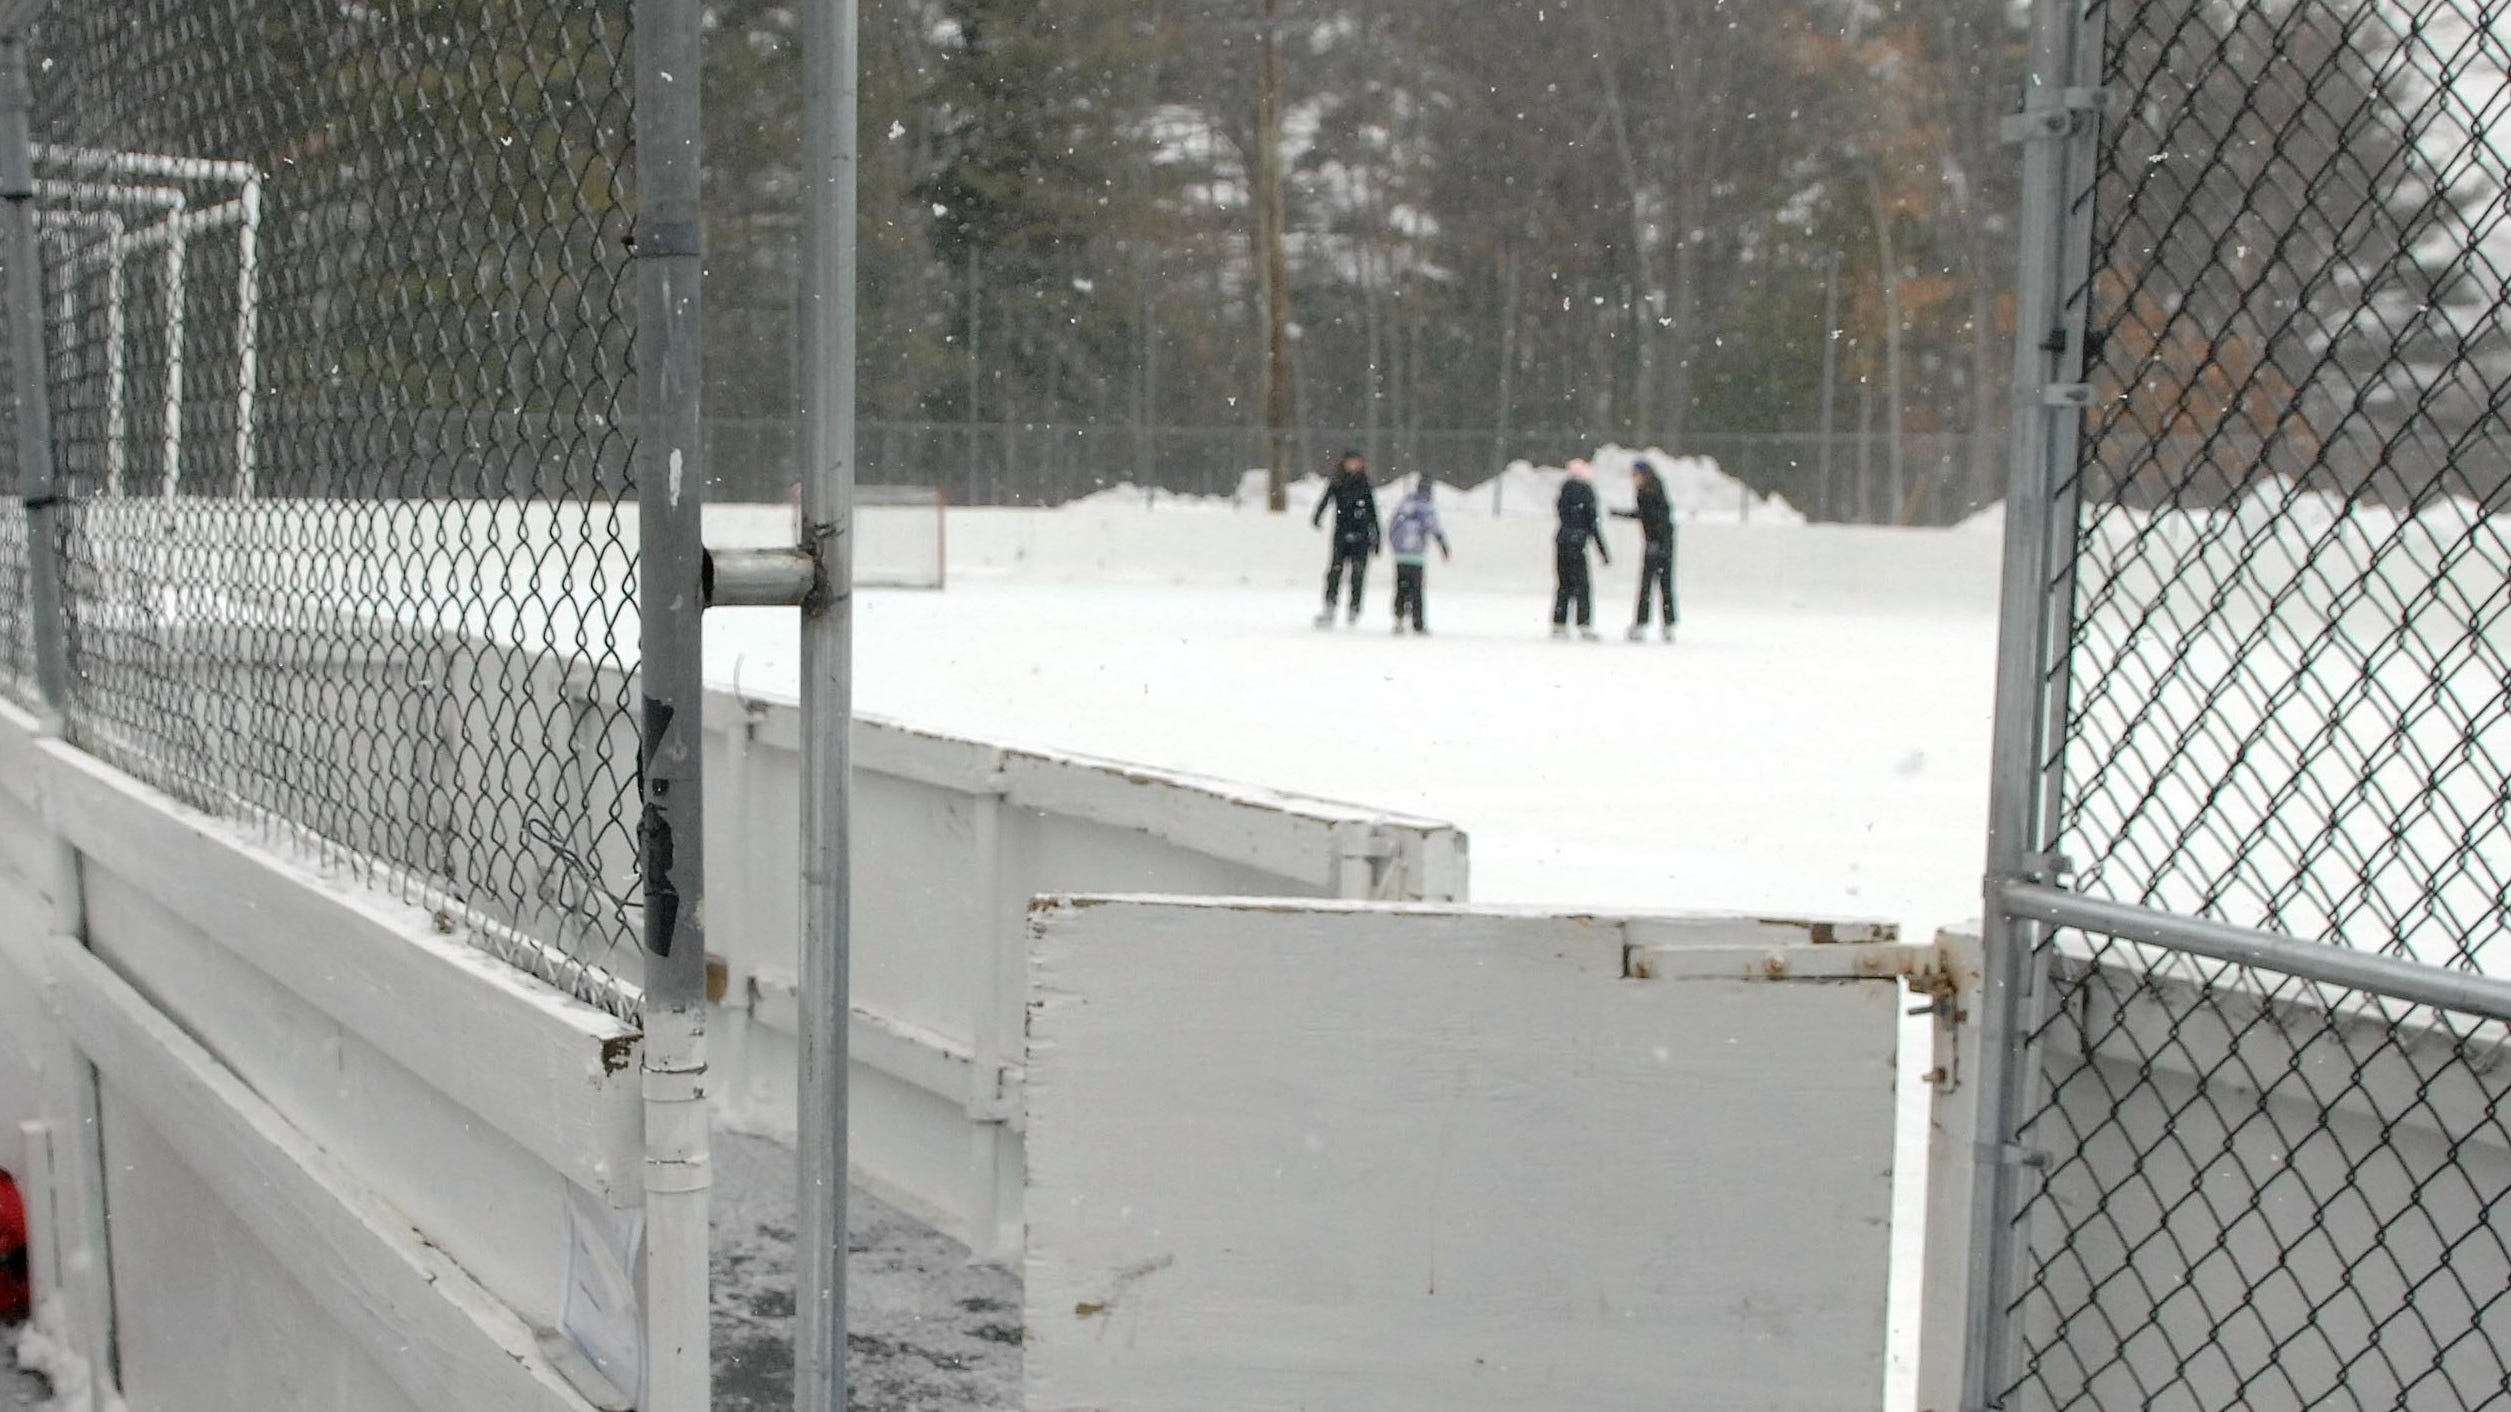 Trespassers Wreck Ringwood Nj Ice Rink Causing It To Close For Season